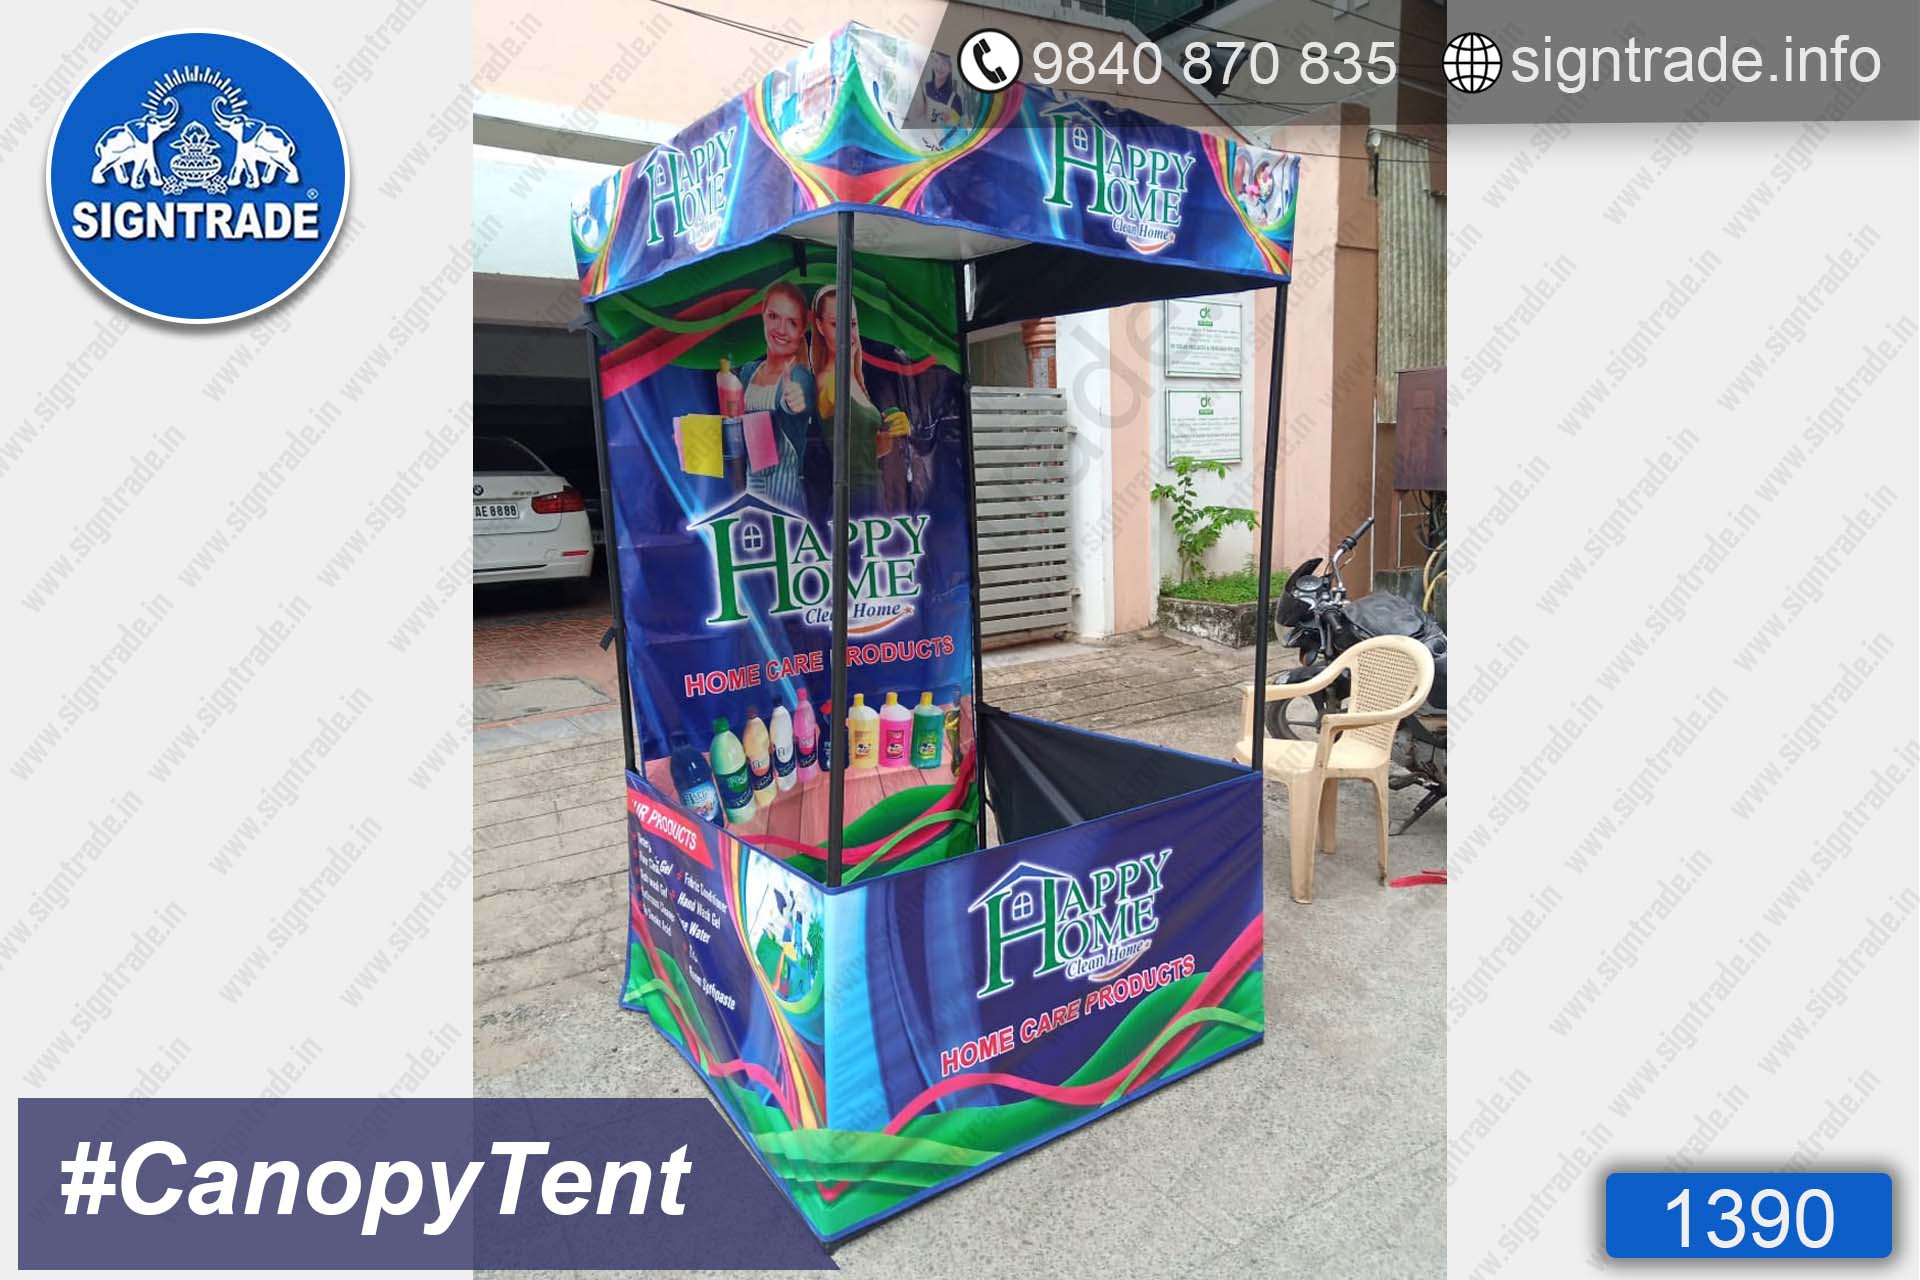 Happy Home - Home Care Products - 1390, Canopy tent, Flat roof tent, Promo tent, Promotional tent, Advertising tent, Promo Flag